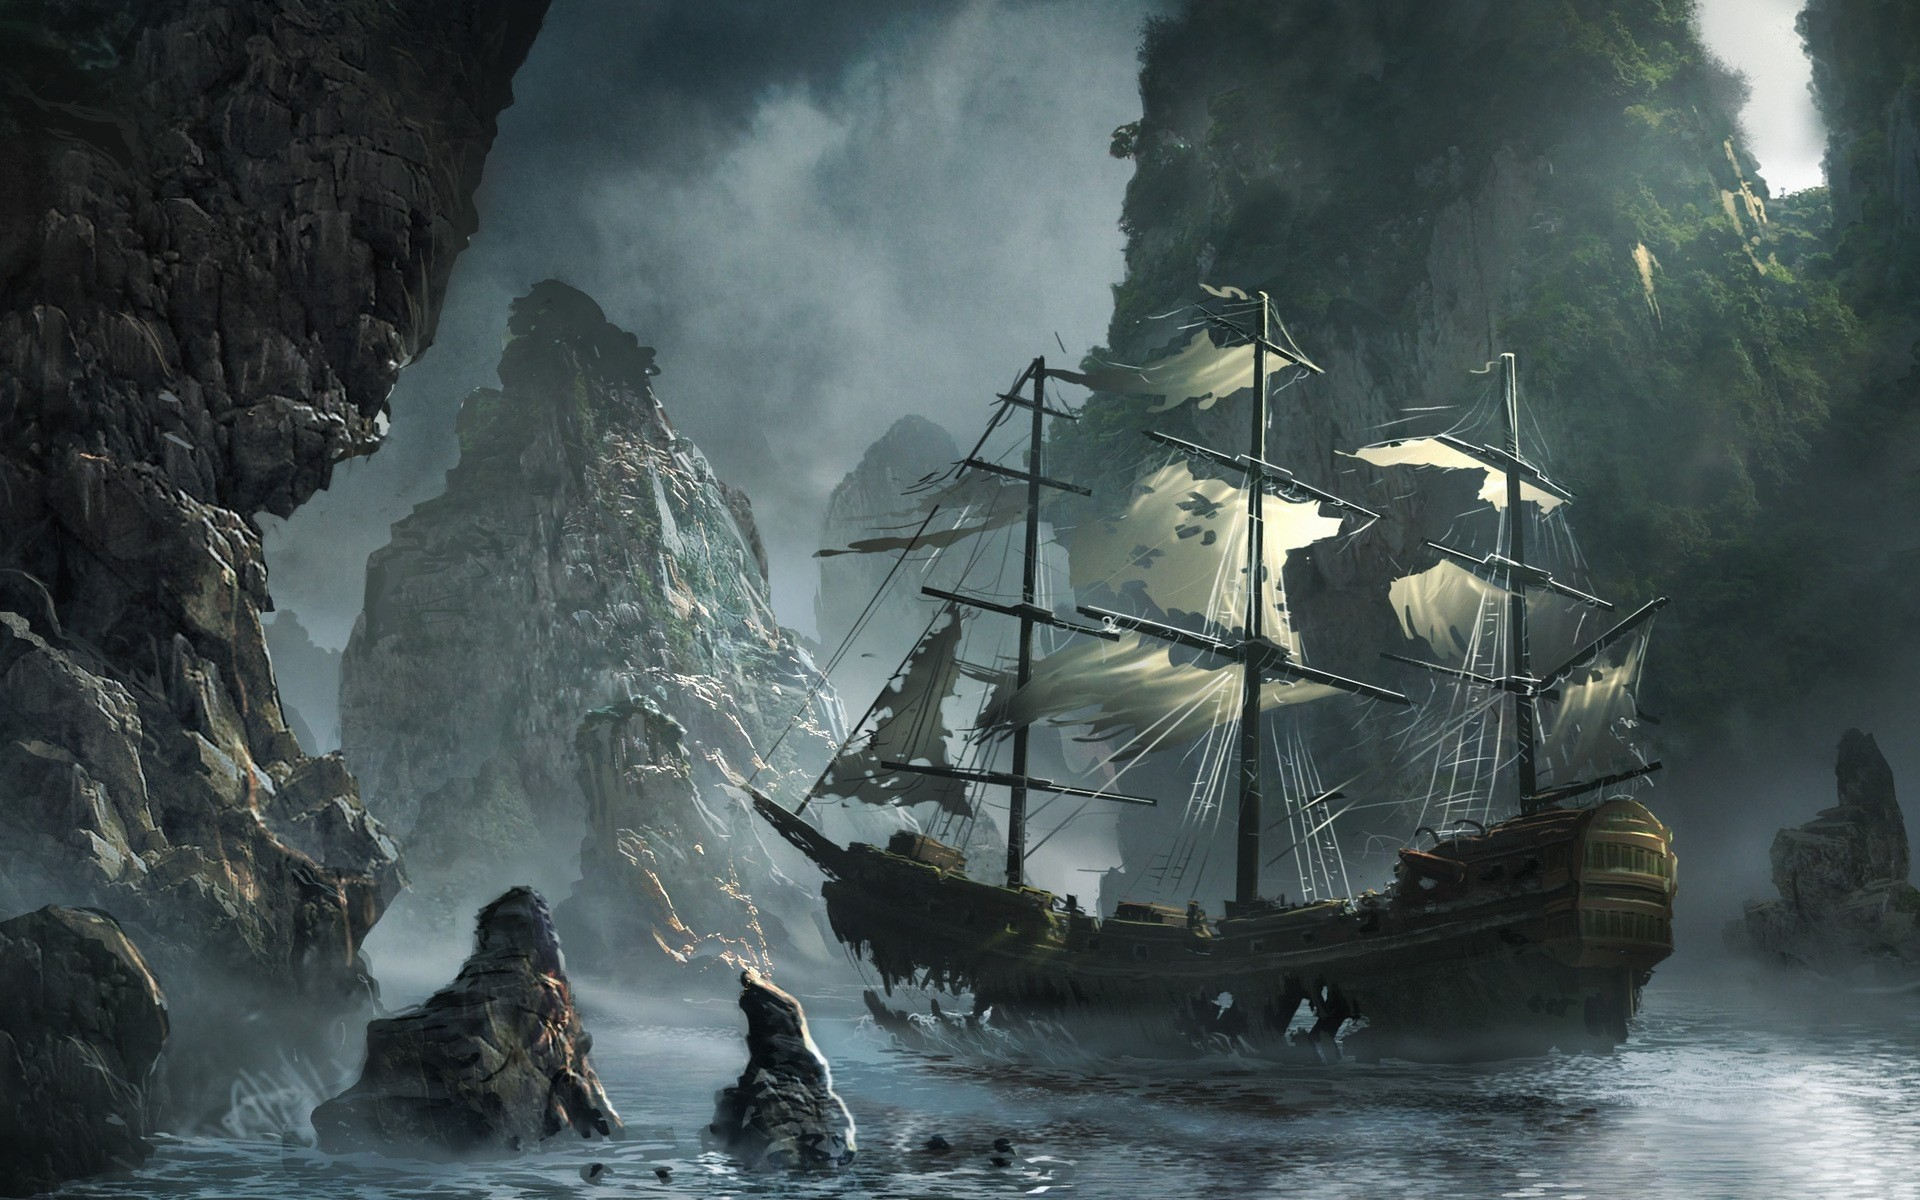 Awesome Black Sails Wallpapers, HD Wallpapers Pack 274 | Free Download